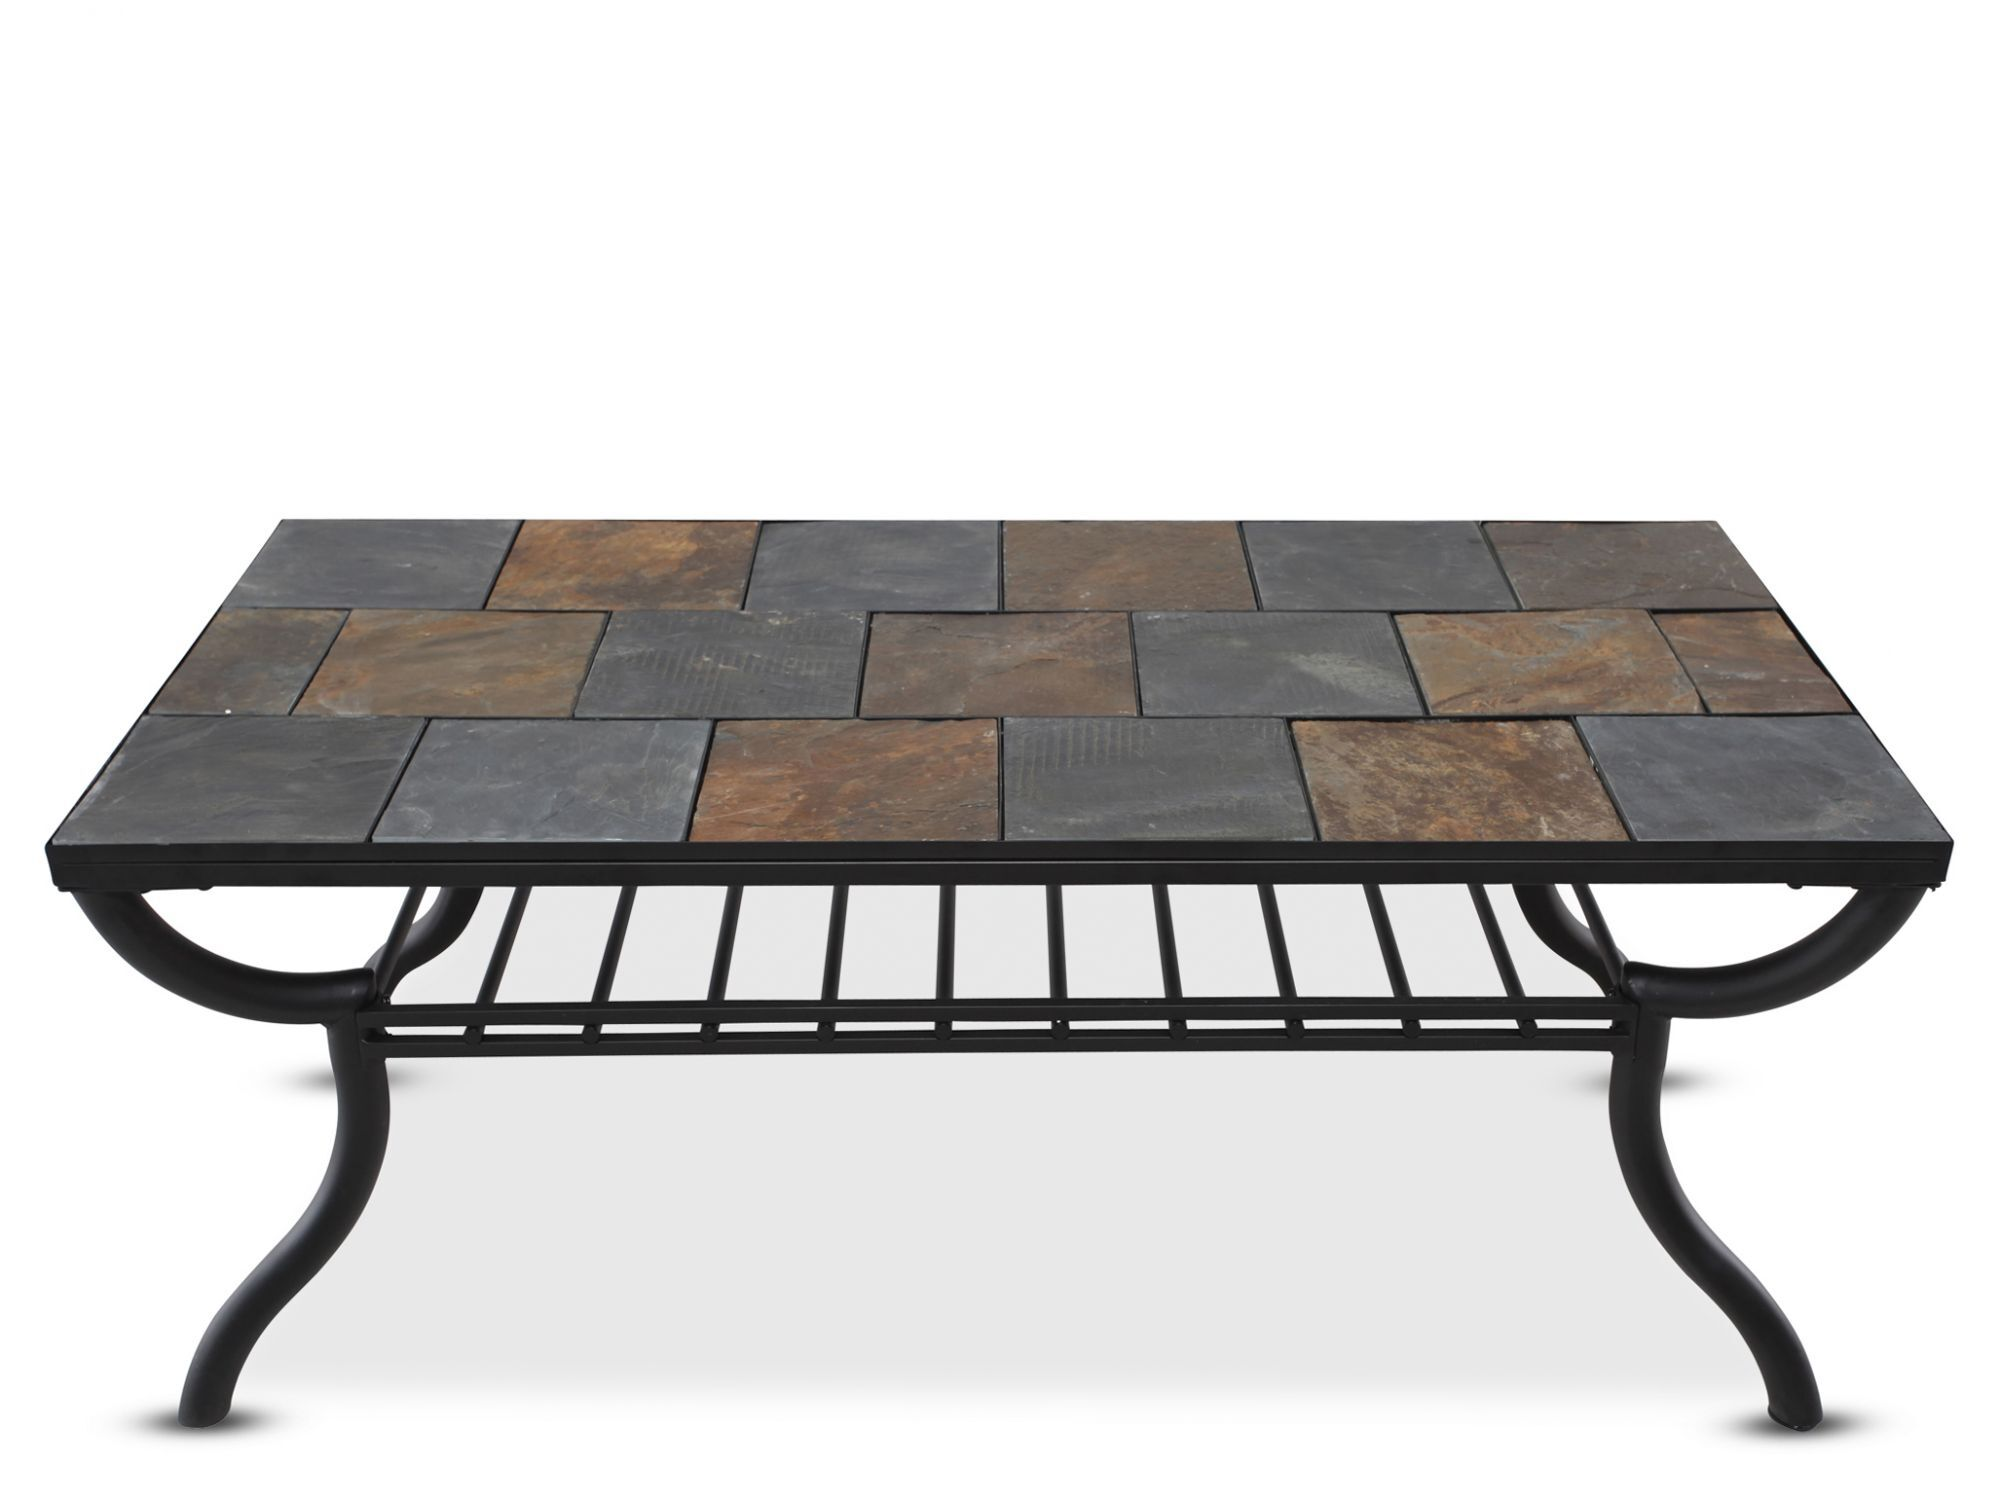 Attrayant Images Tile Top Rectangular Cocktail Tableu0026nbsp;in Gunmetal Tile Top  Rectangular Cocktail Tableu0026nbsp;in Gunmetal